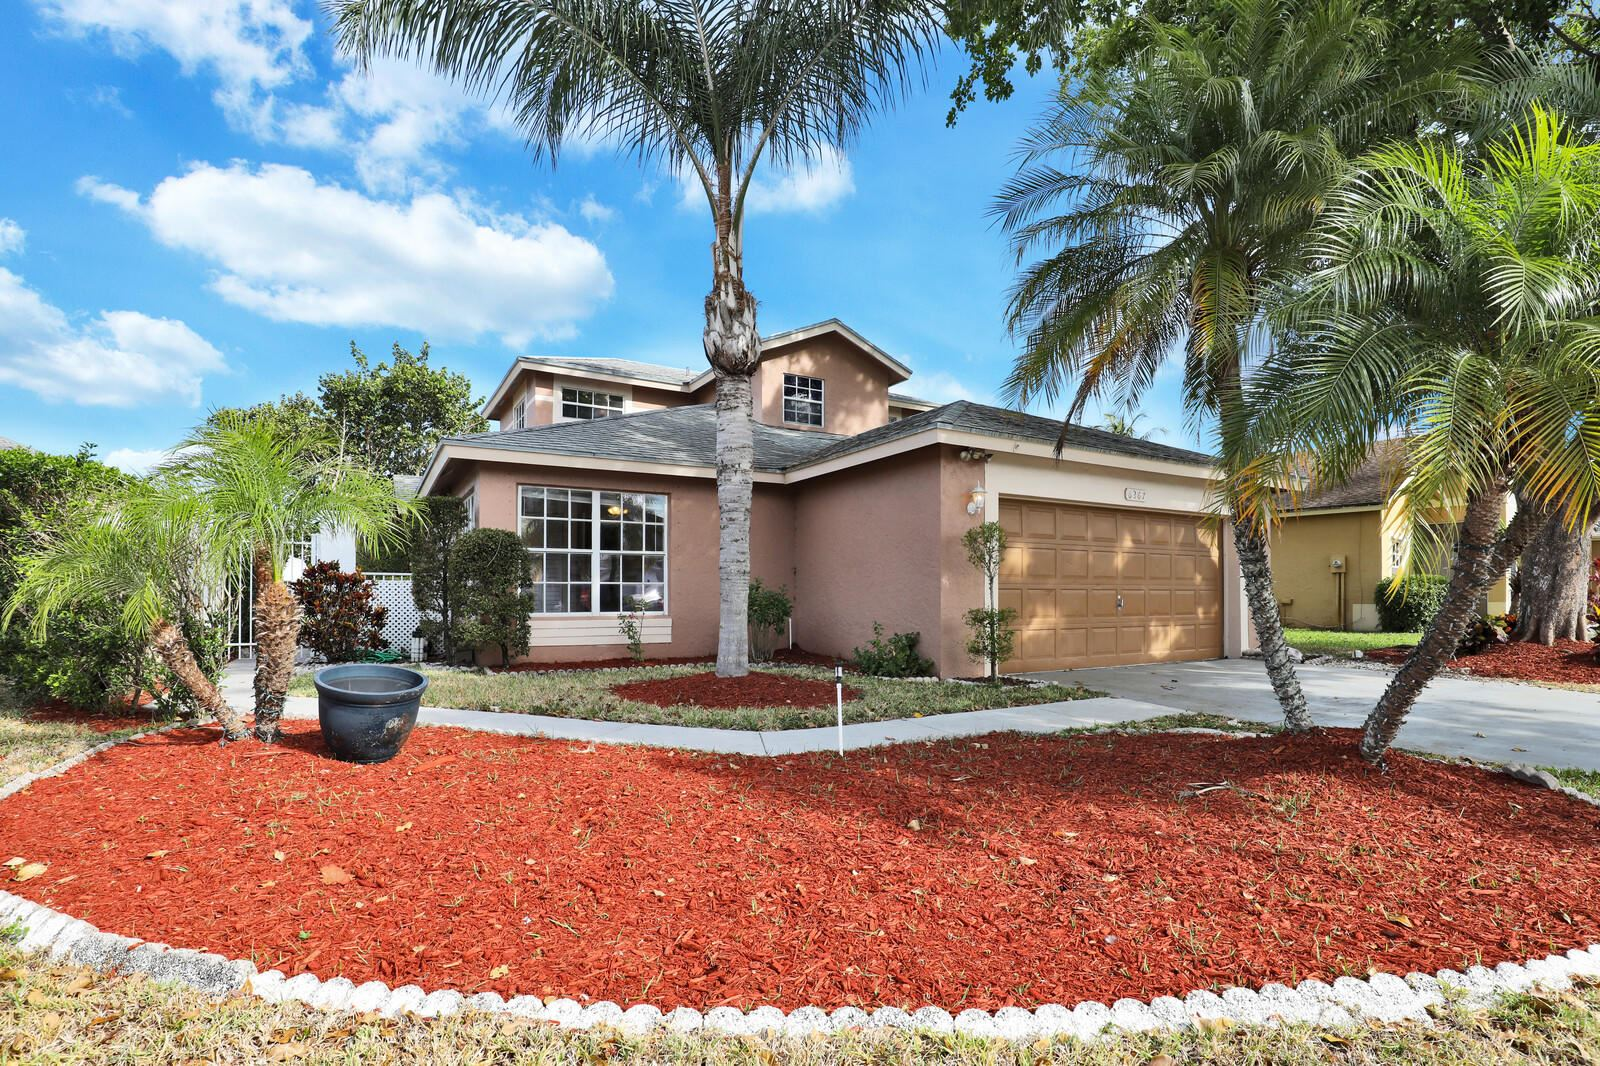 6367 Lansdowne Circle, Boynton Beach, FL 33472 - MLS#: RX-10706468